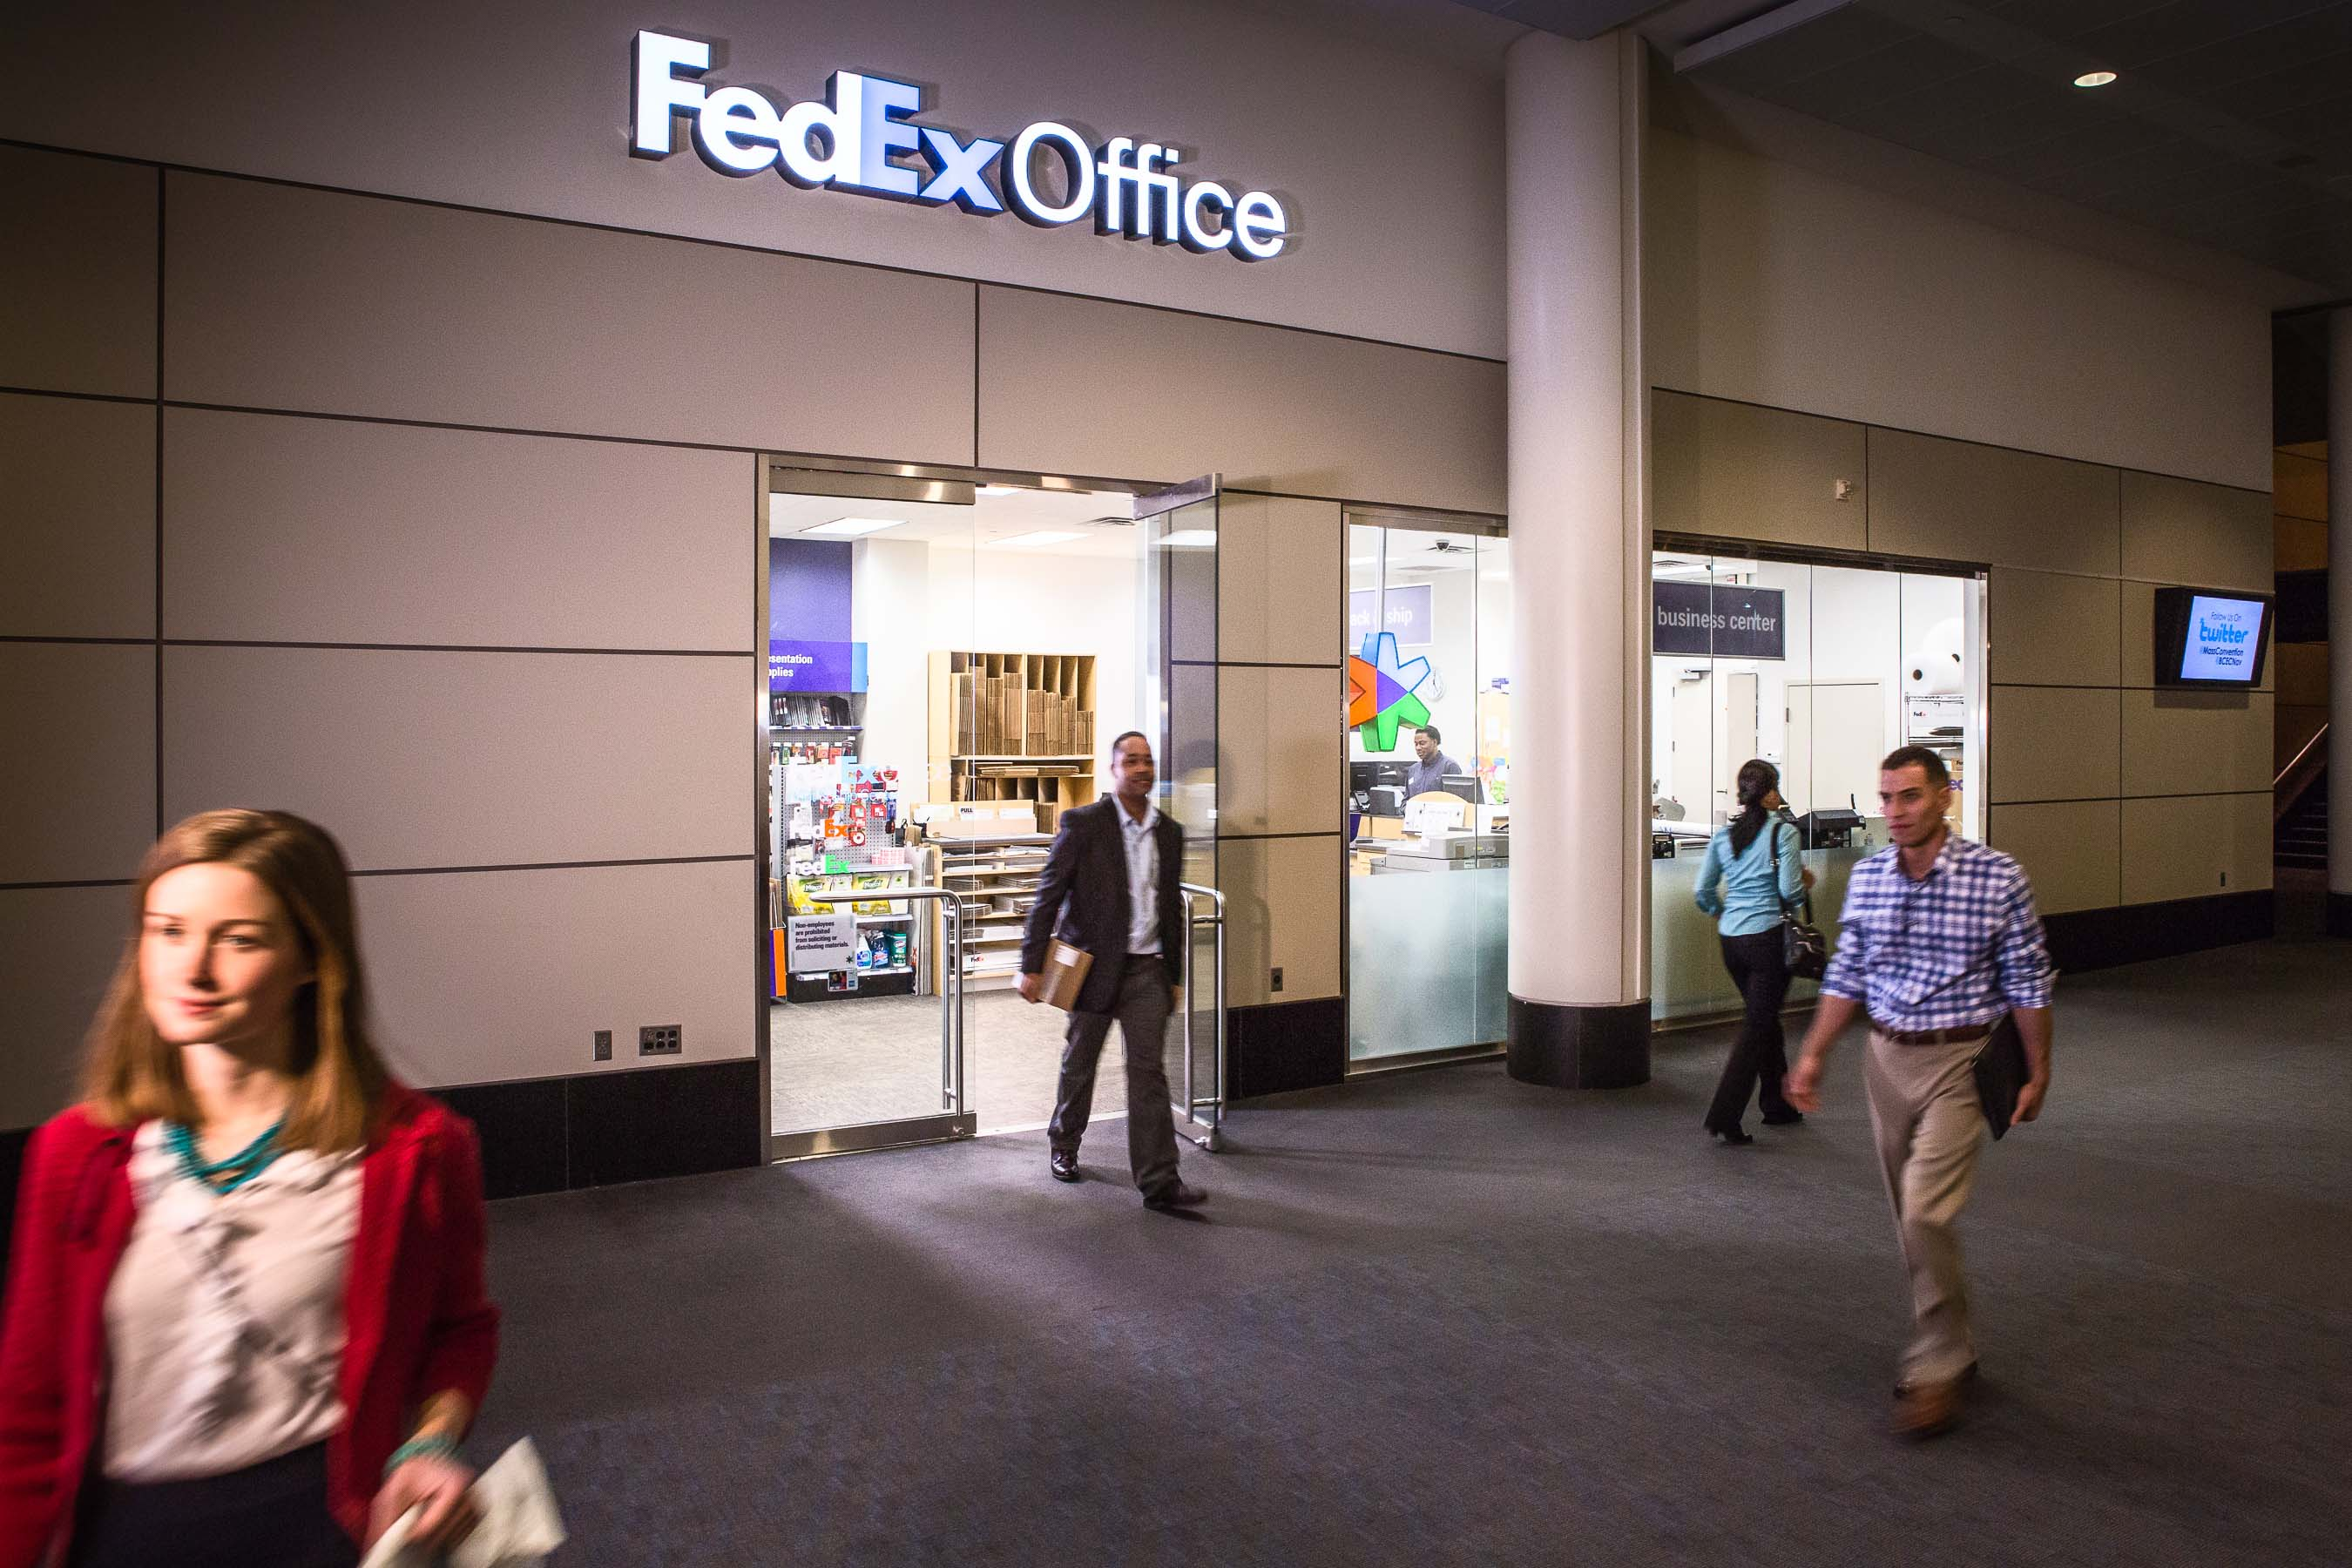 FedEx Office location with customers